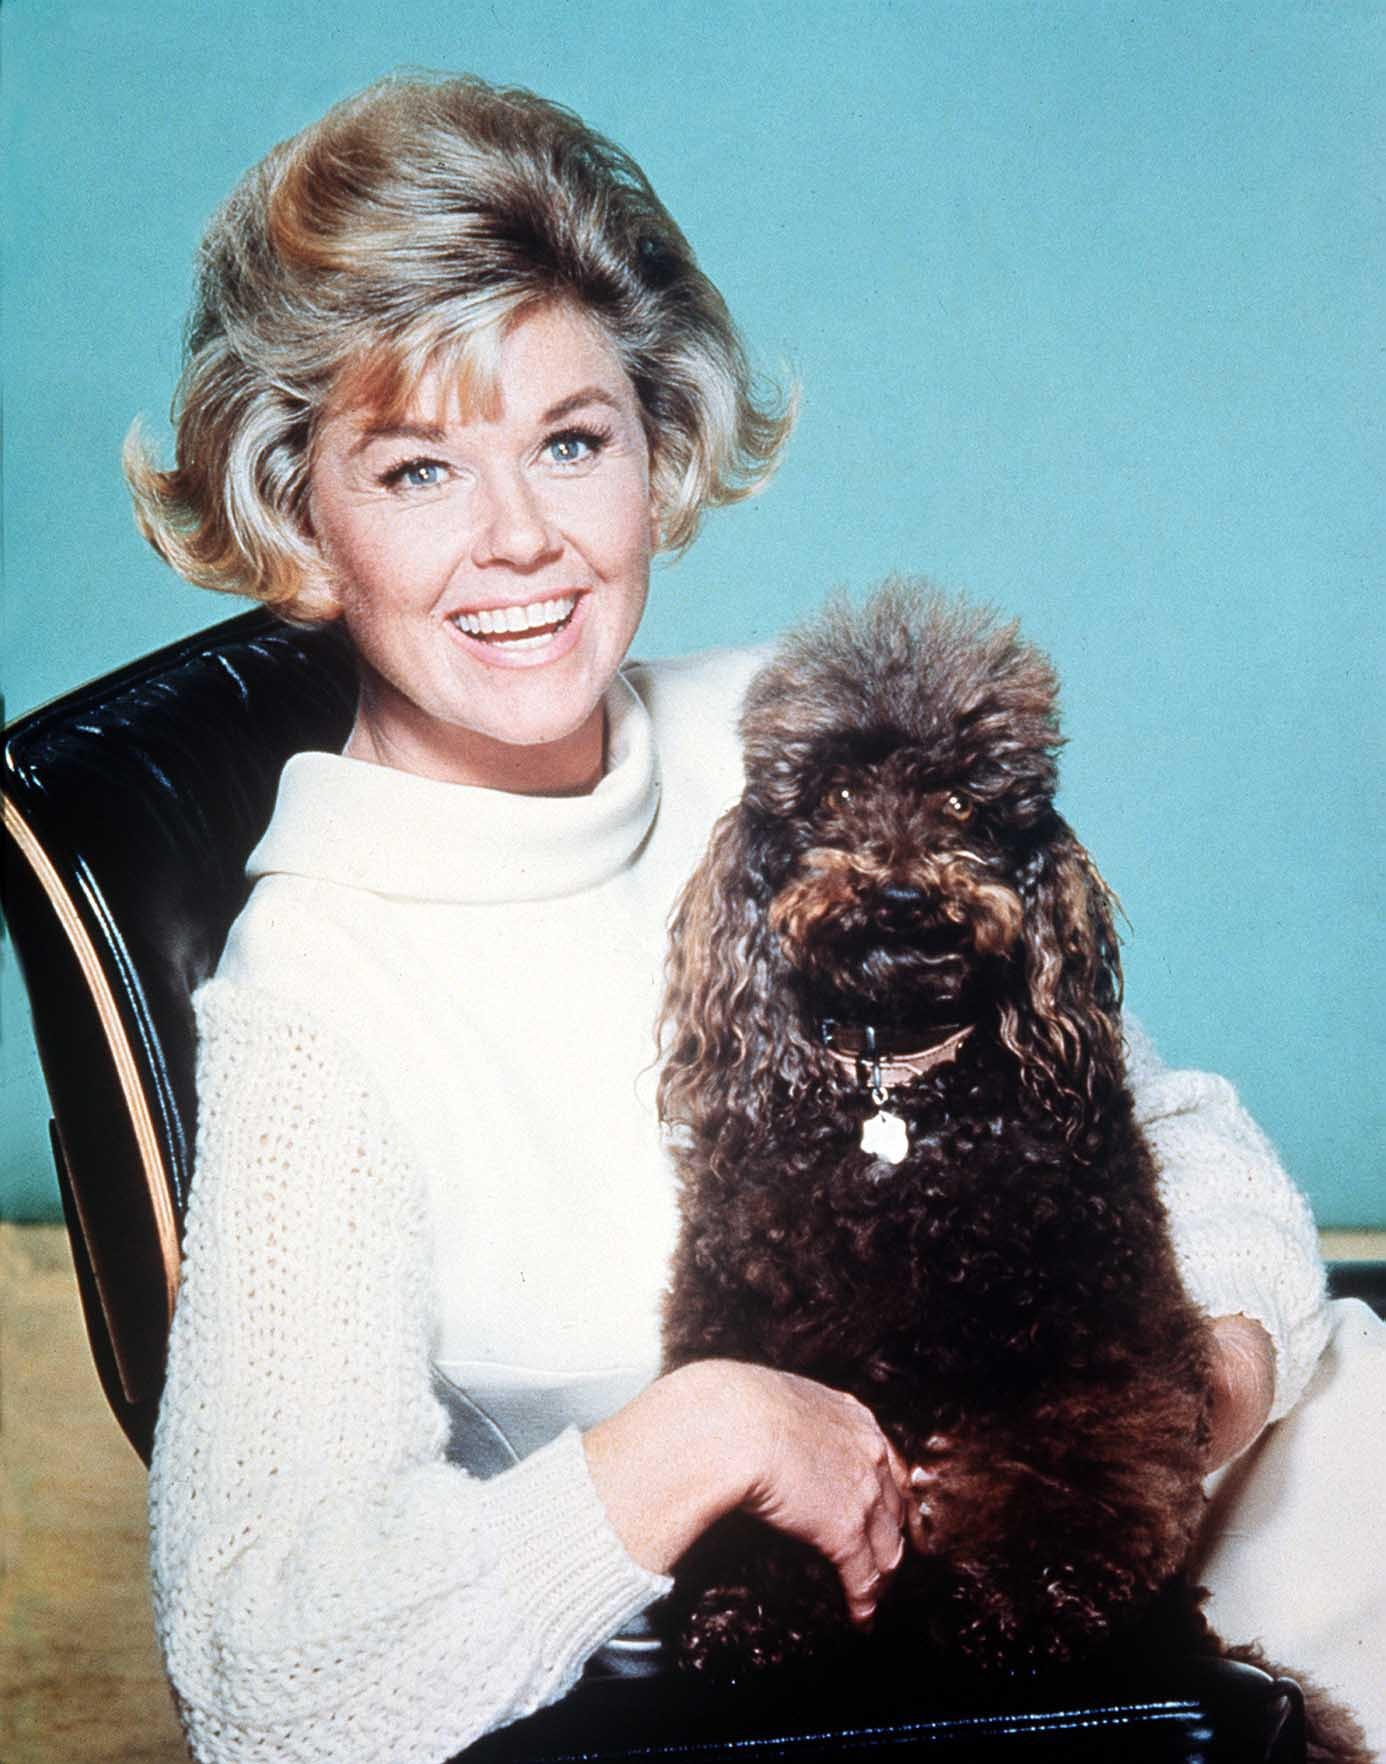 American actress and singer Doris Day with a dog in 1968 | Photo: Getty Images